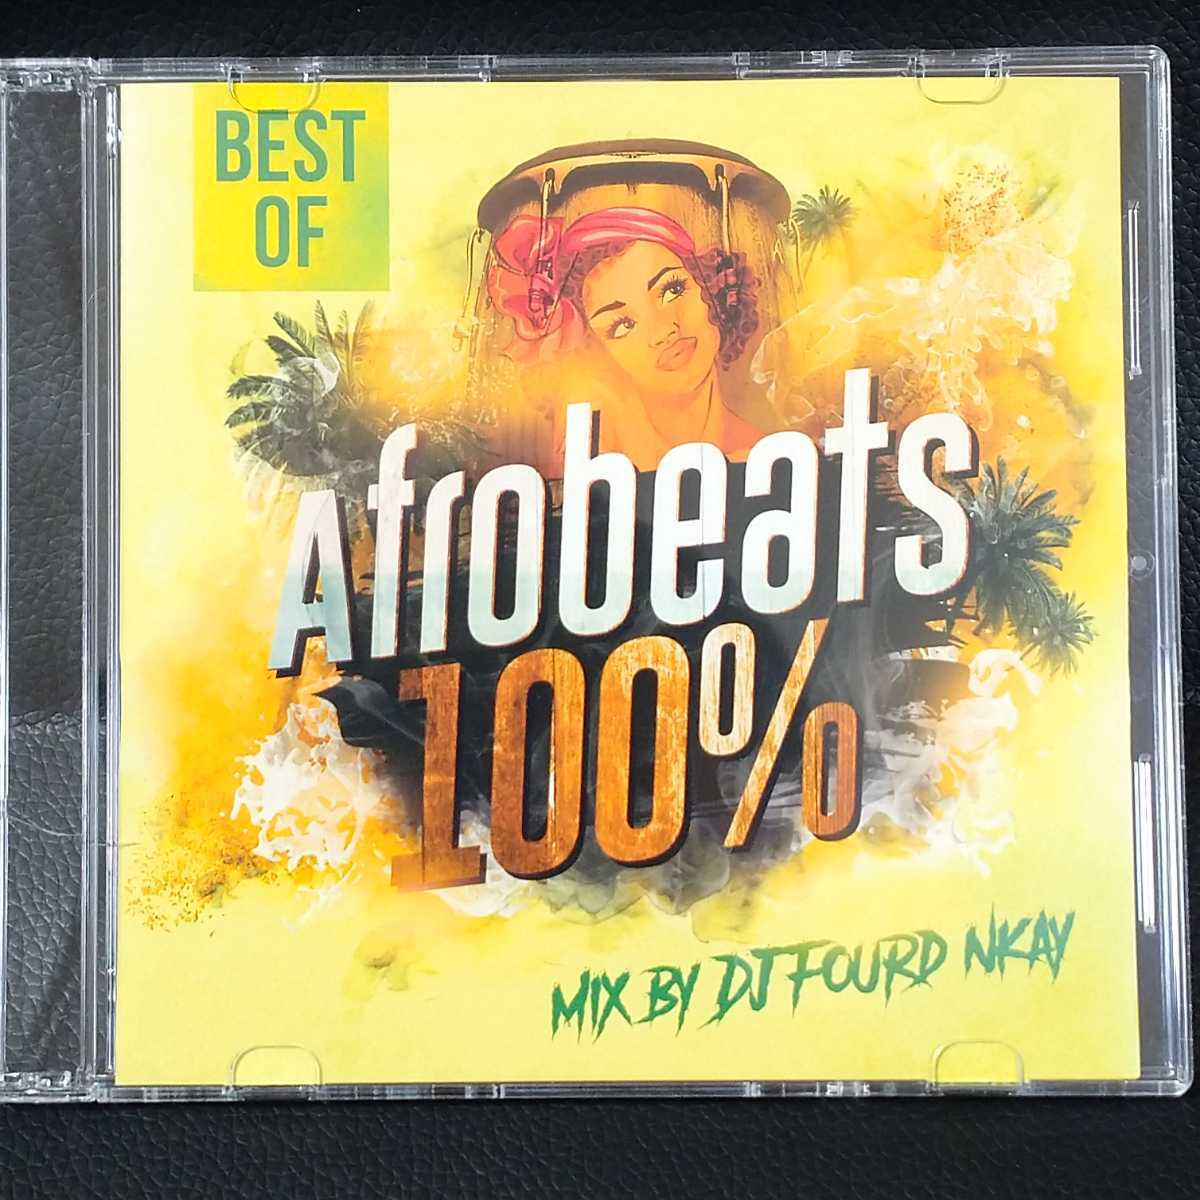 【CD】BEST OF「AFROBEATS 100%」mix by DJ FOURD NKAY アフロビート アフロビーツ MixCD